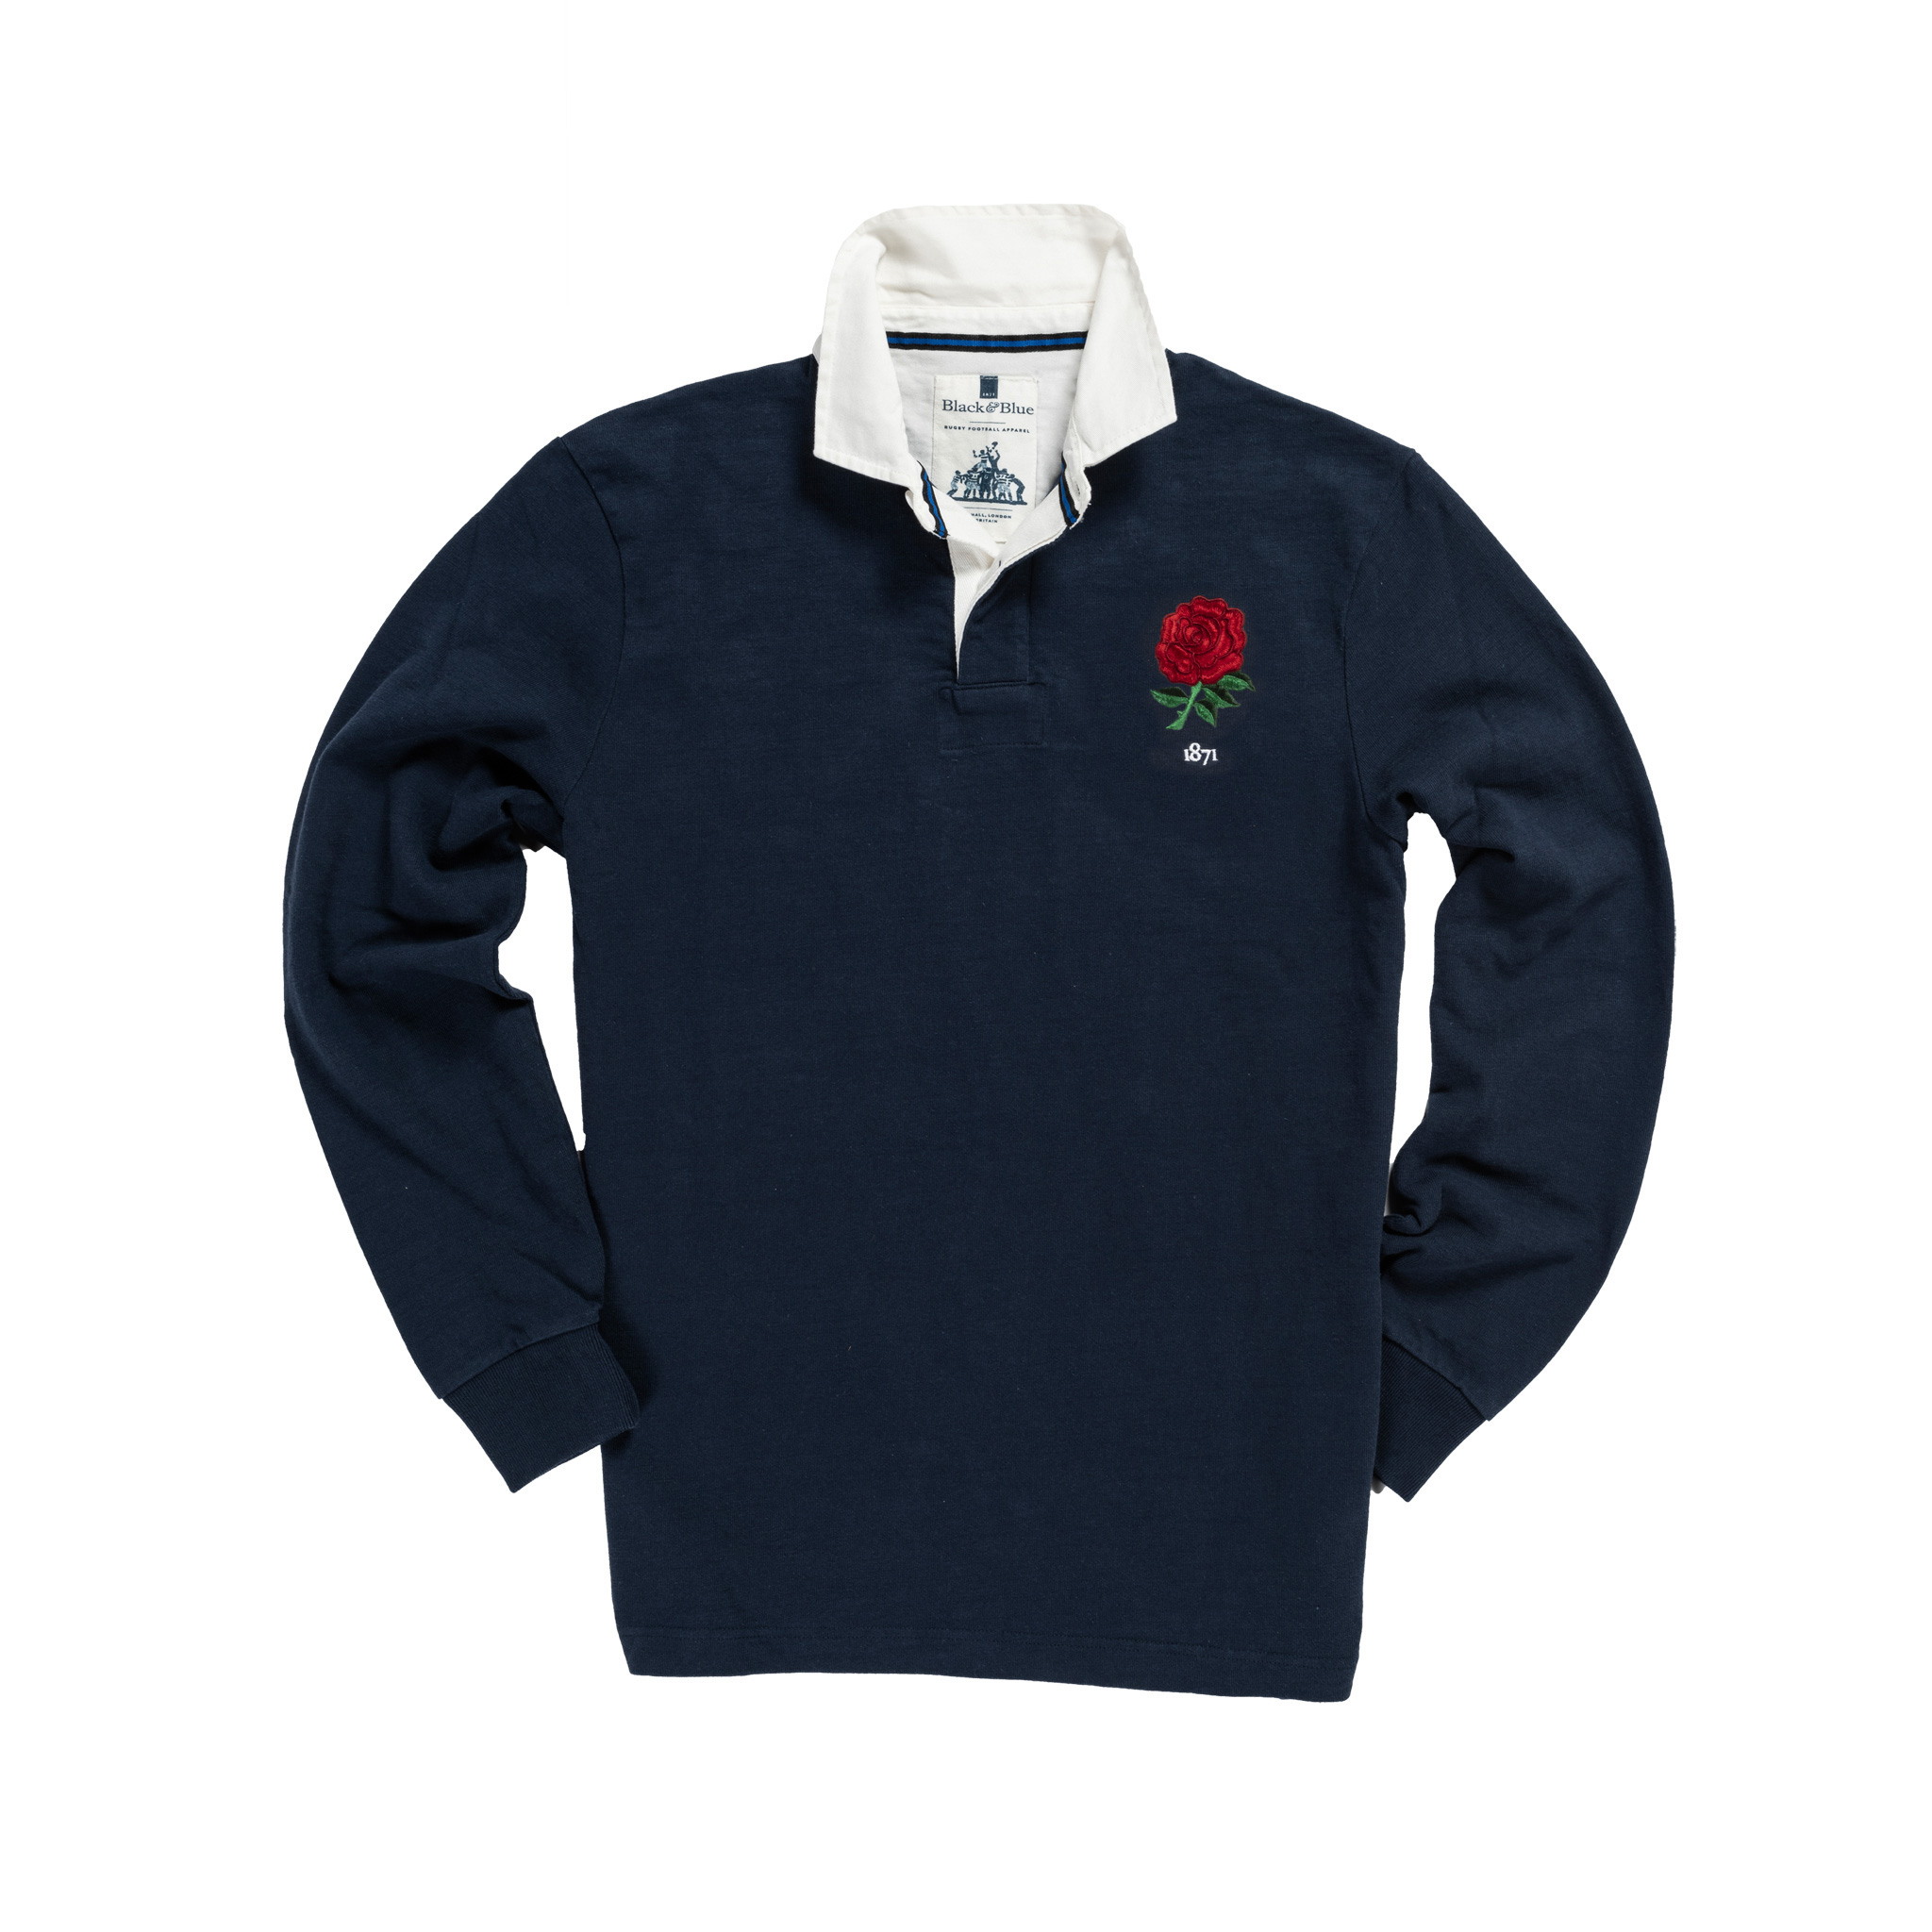 England 1871 Vintage Rugby Away Shirt